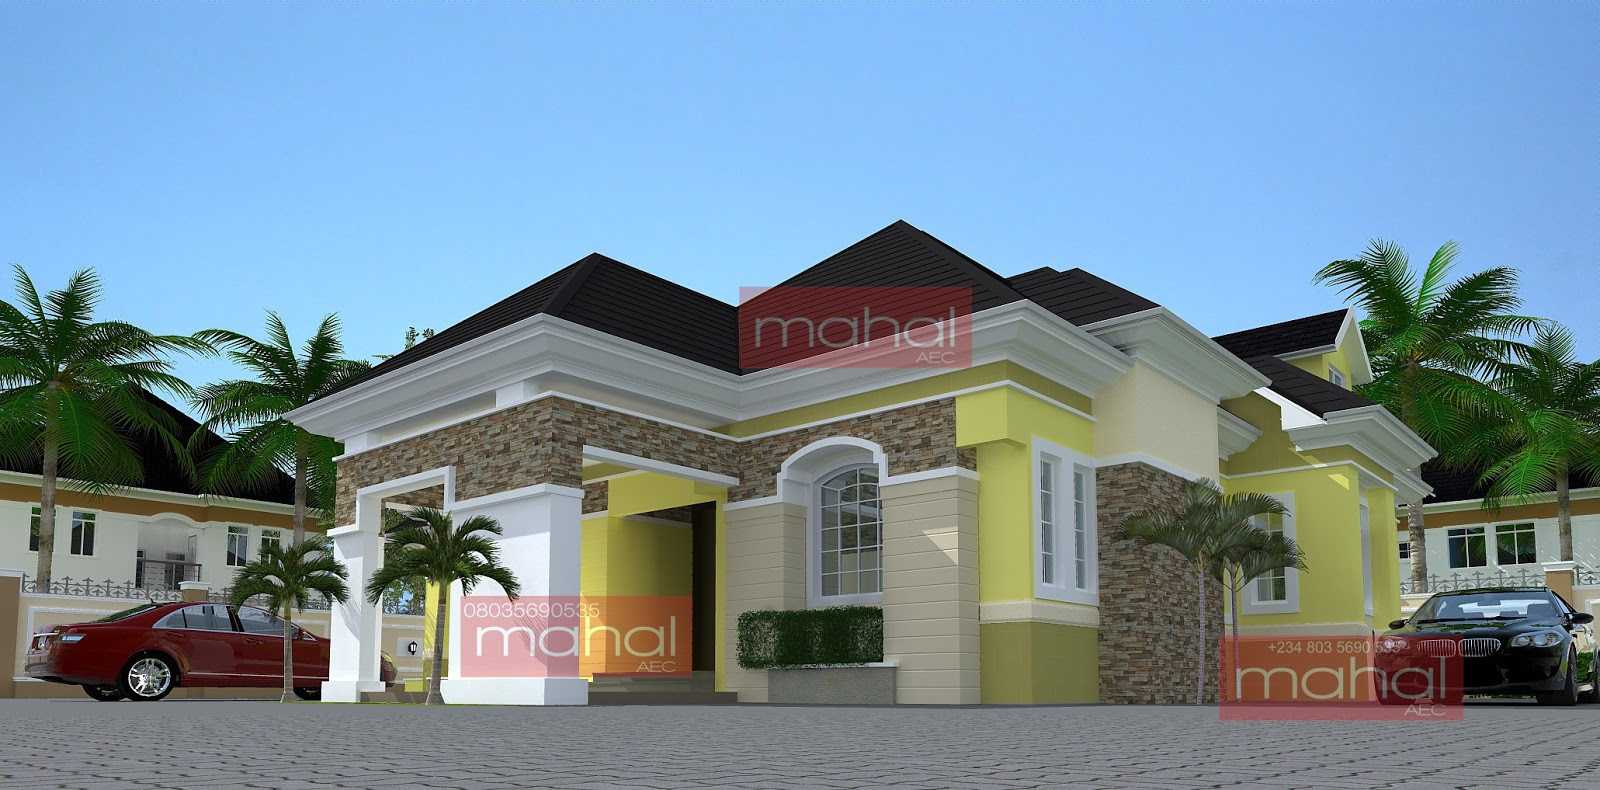 Parapet designs on bungalows in nigeria for Nigeria modern houses